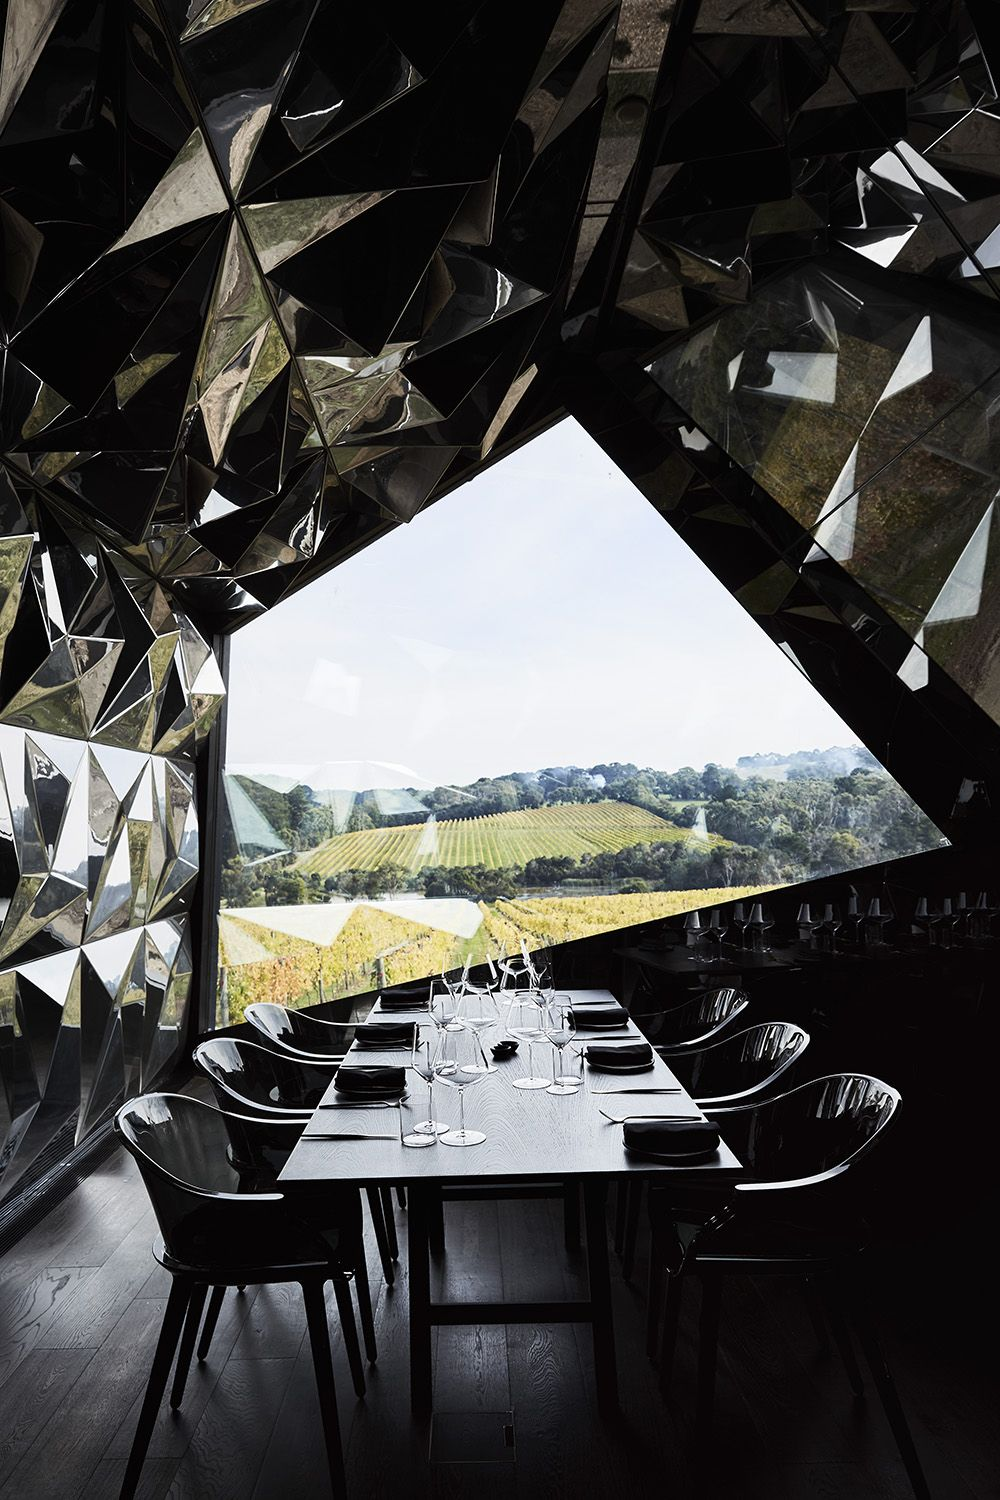 Inside the Geode, private dining has a view.